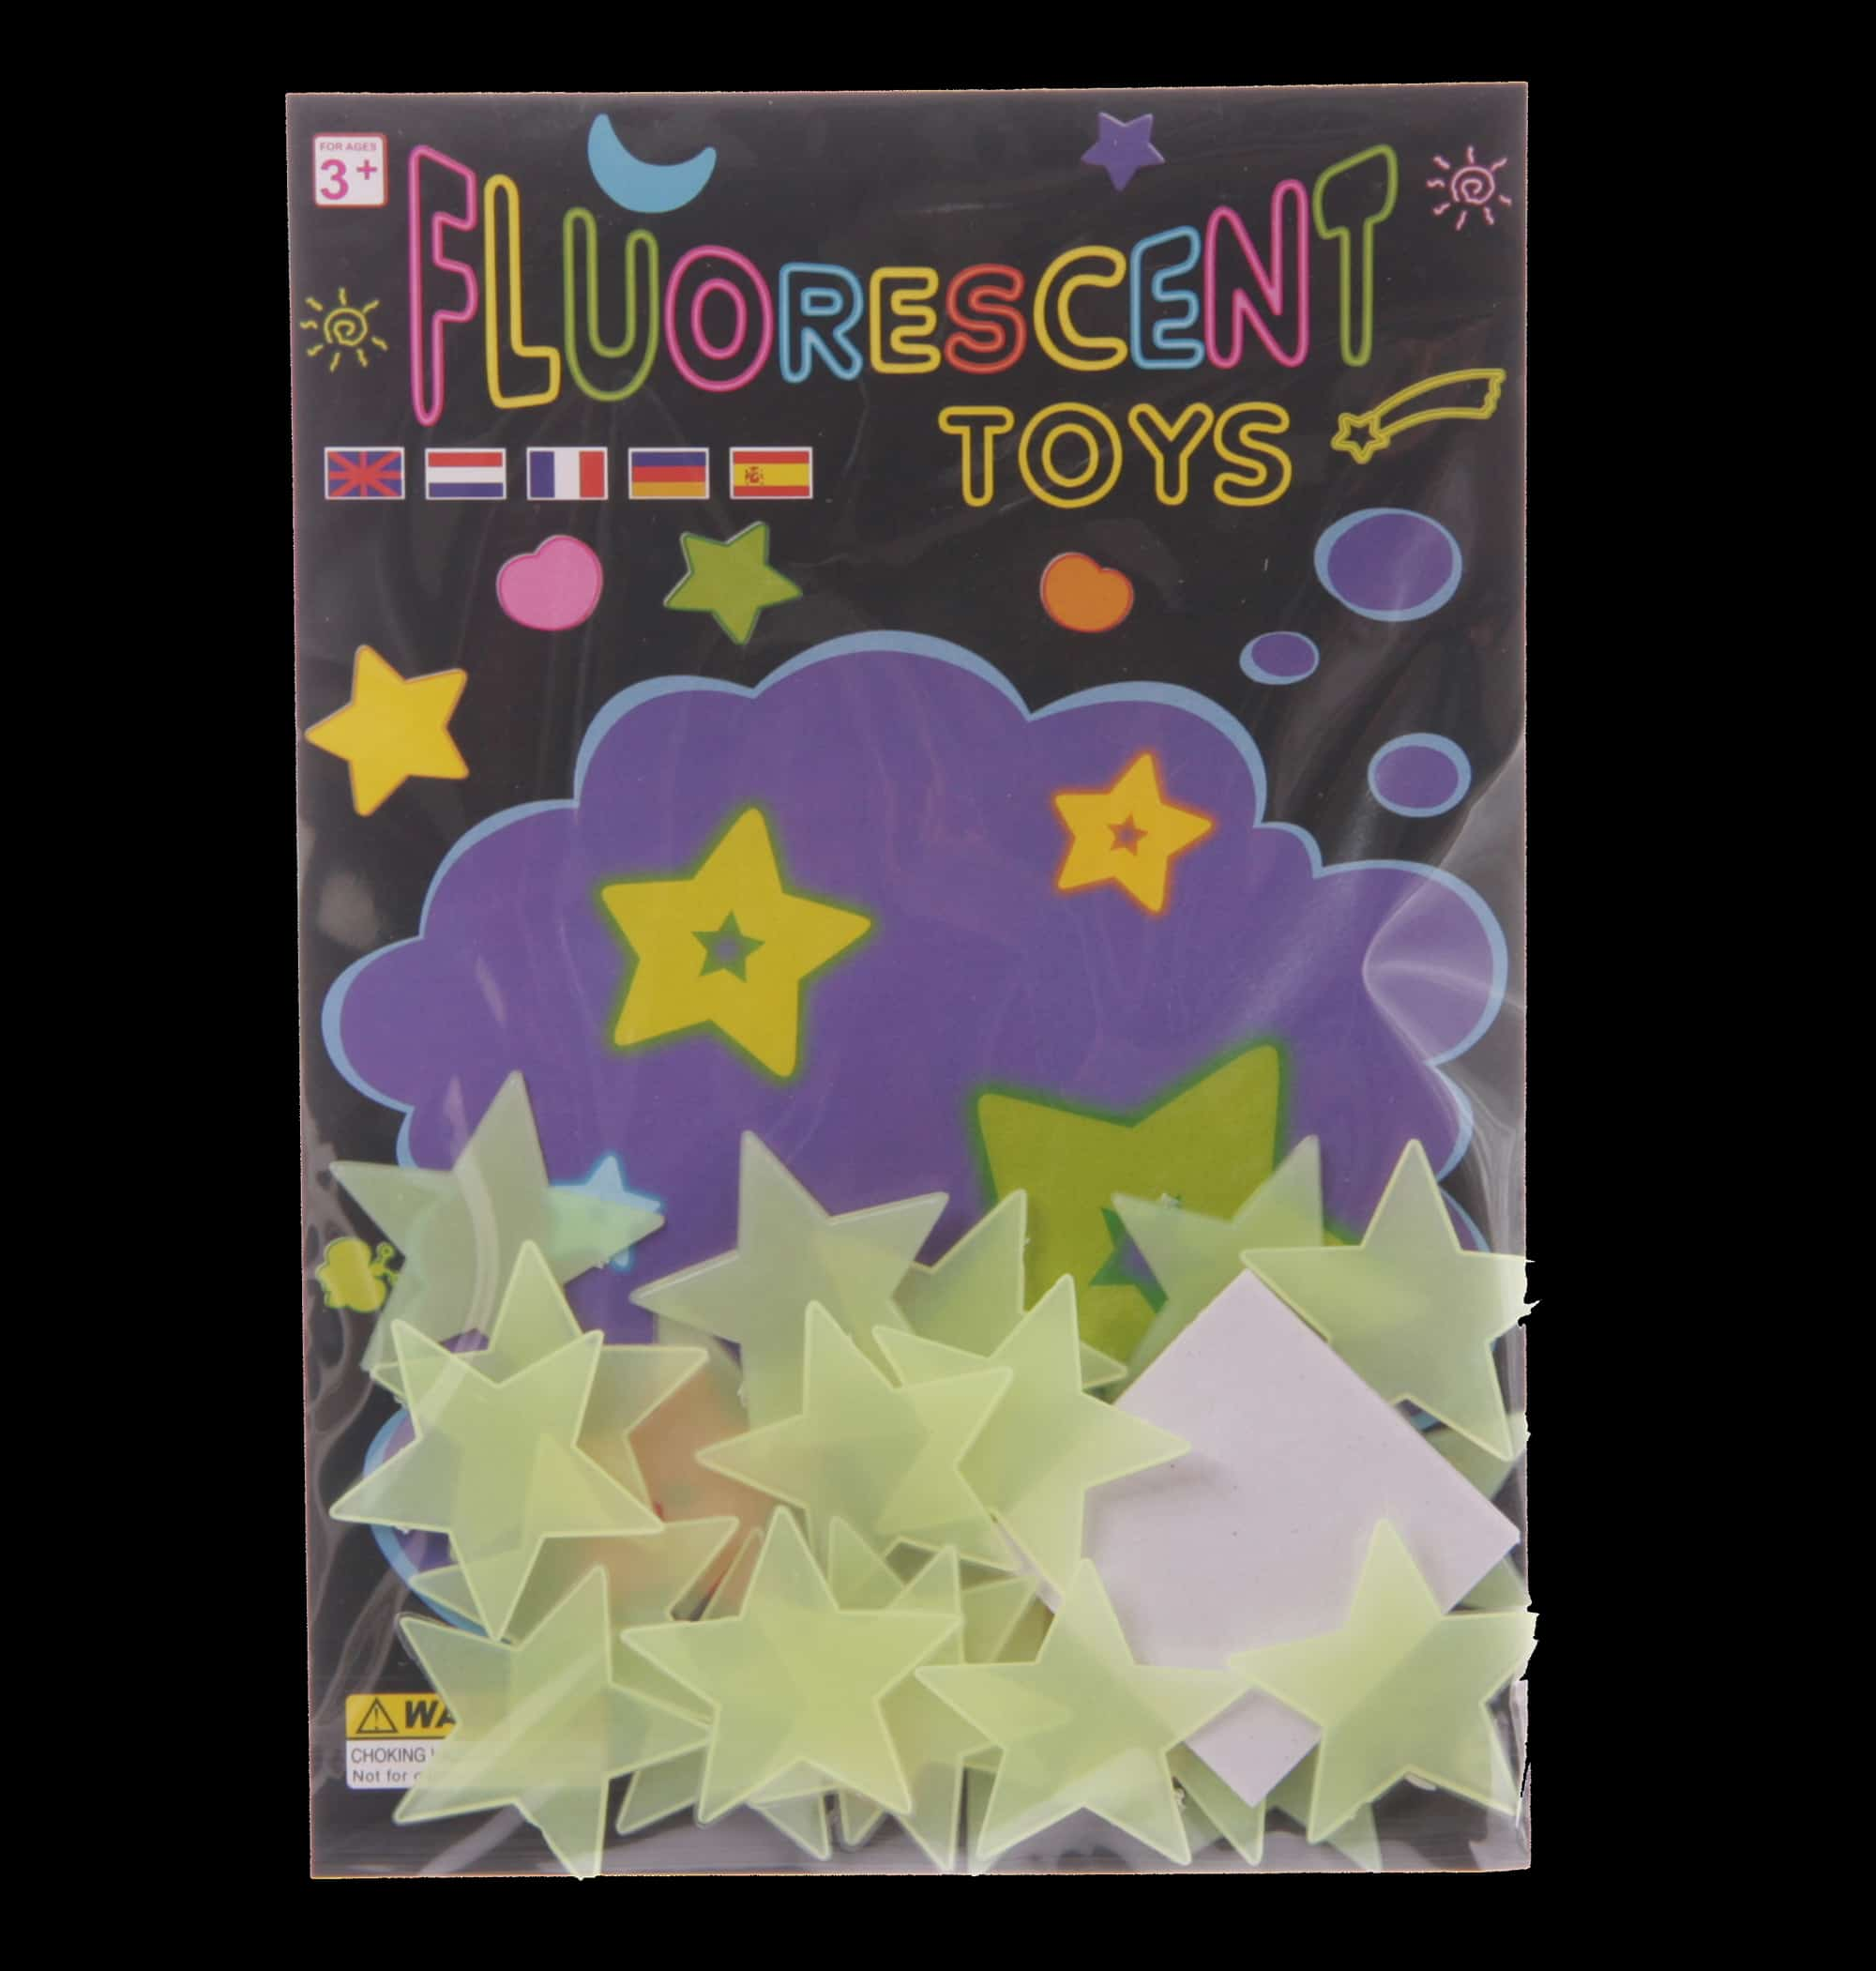 Pack of 24 plastic stars that glow in thwe dark after being exposed to light